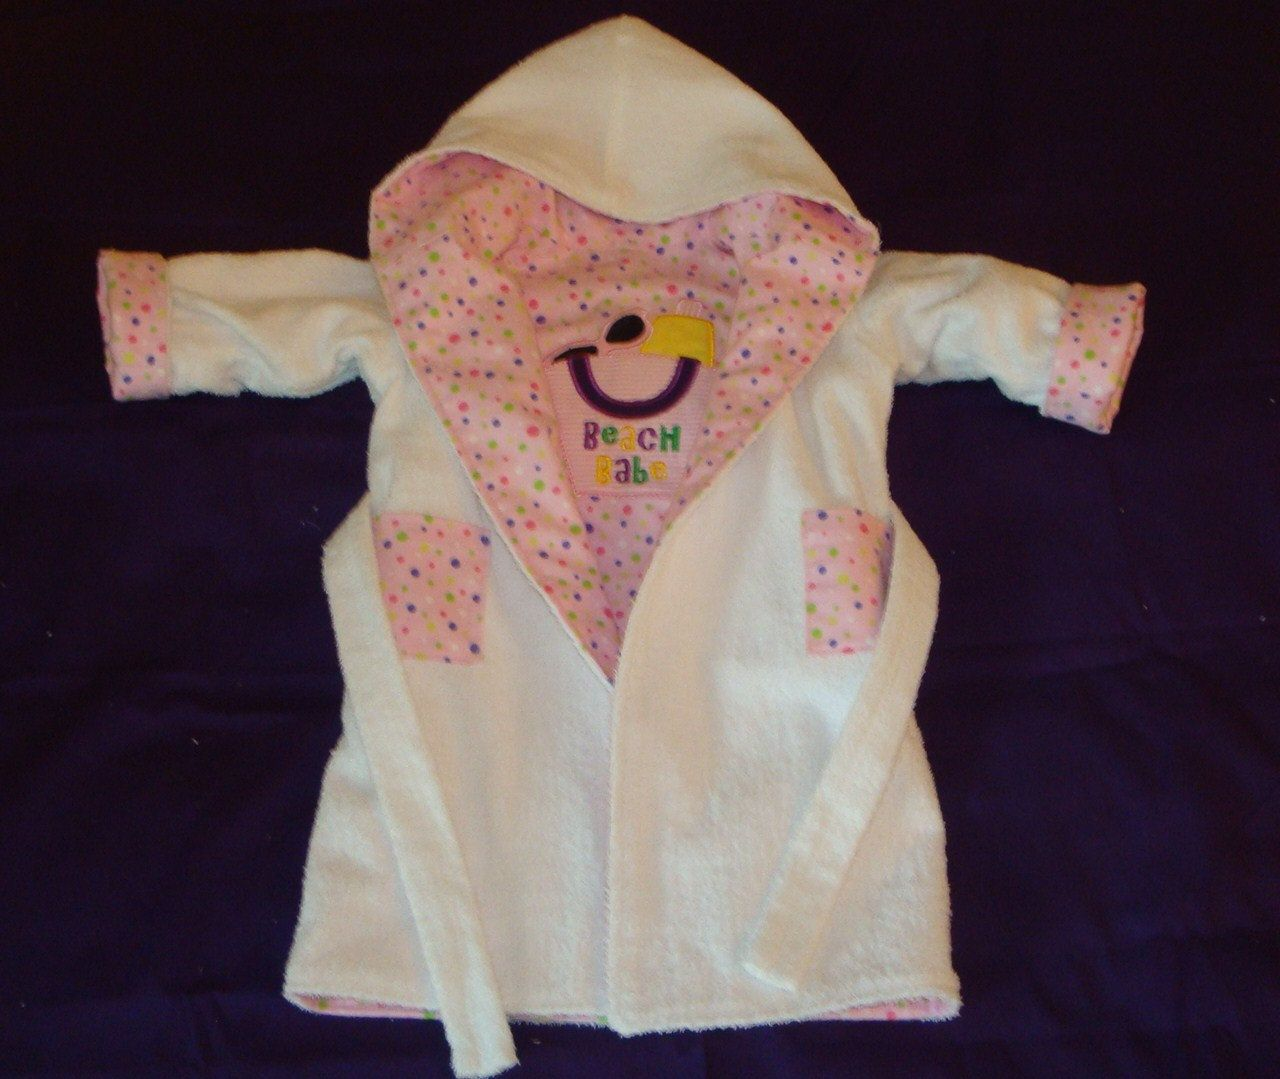 Reversible Pink Girl's Beach / Bath Robe Size 18 to 24 Months.  Getting out the sewing machine again.  Love making these!